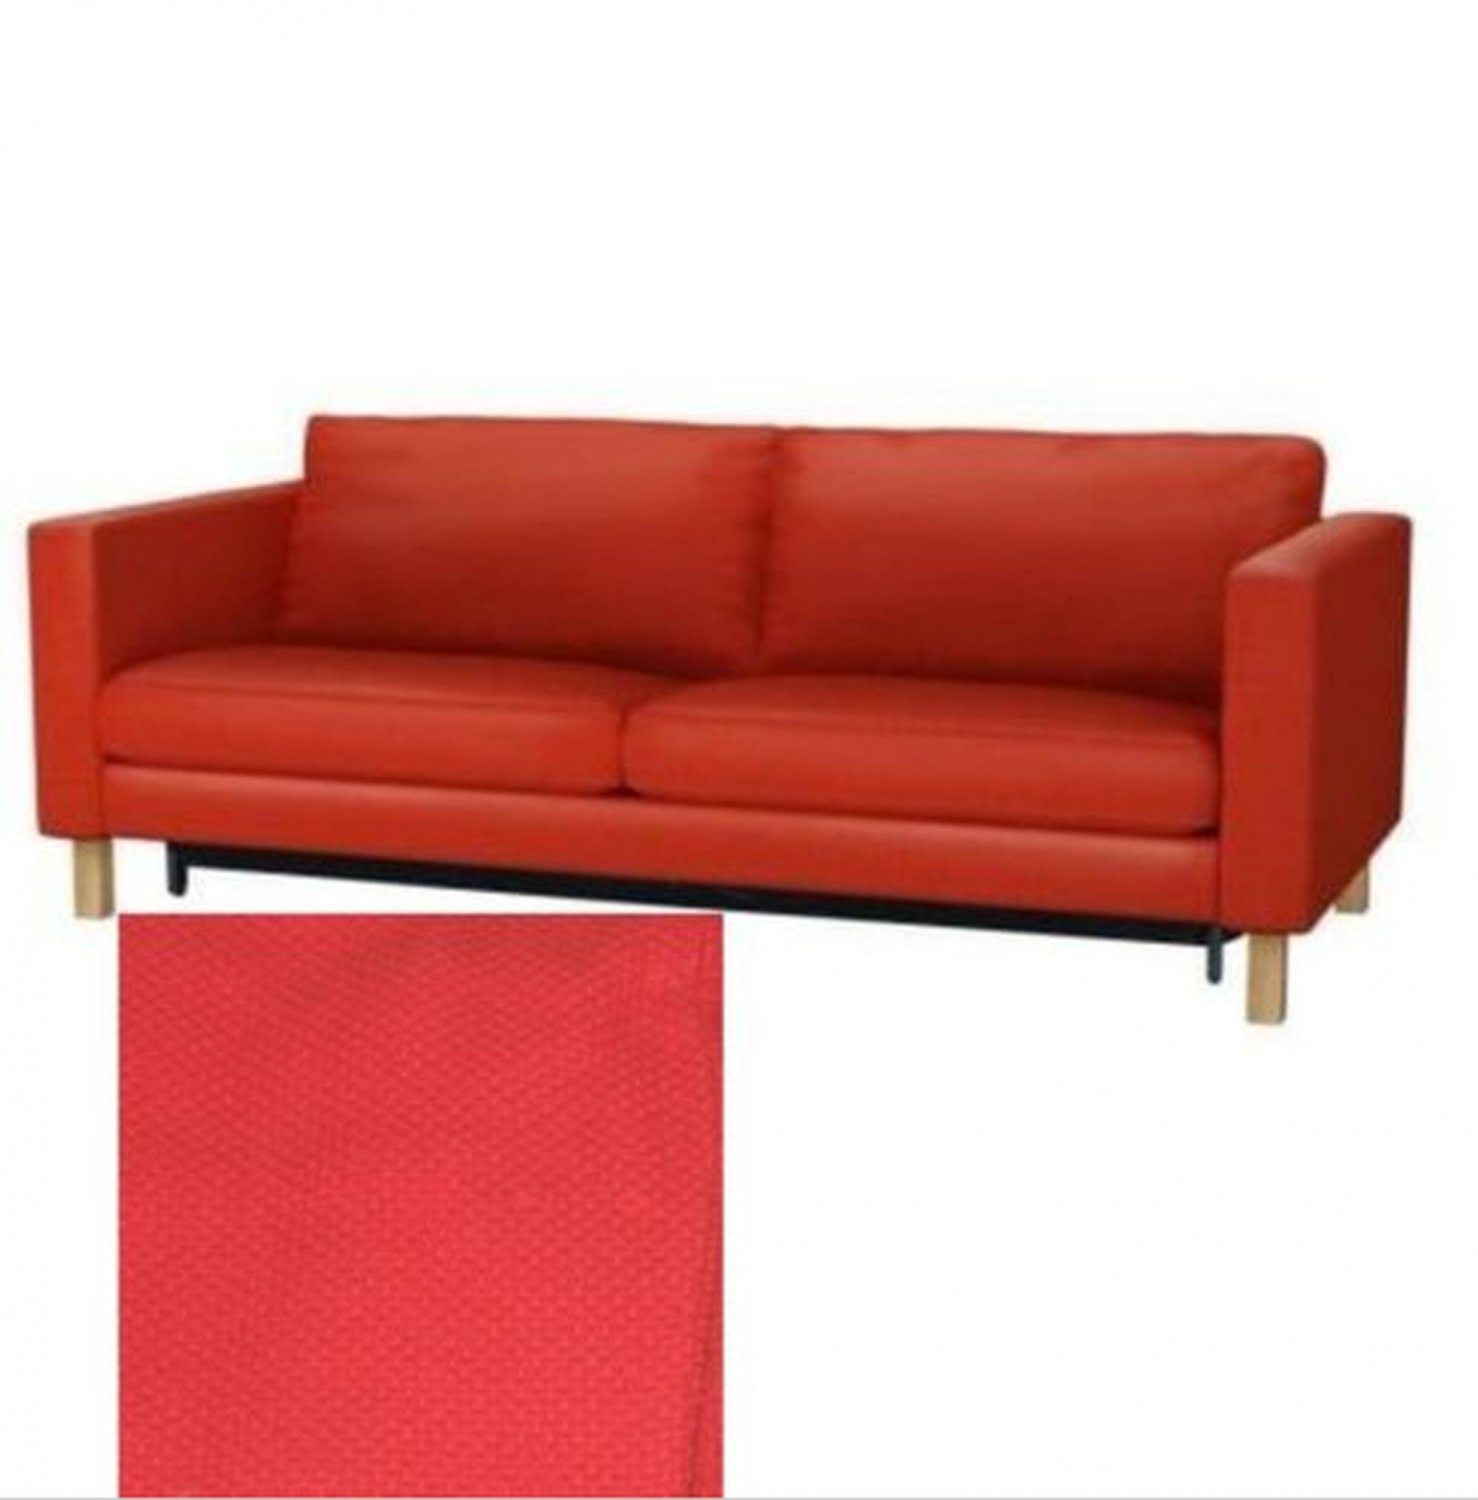 Ikea Sofa 179 Euro Ikea Karlstad Sofa Bed Sofabed Slipcover Cover Korndal Red